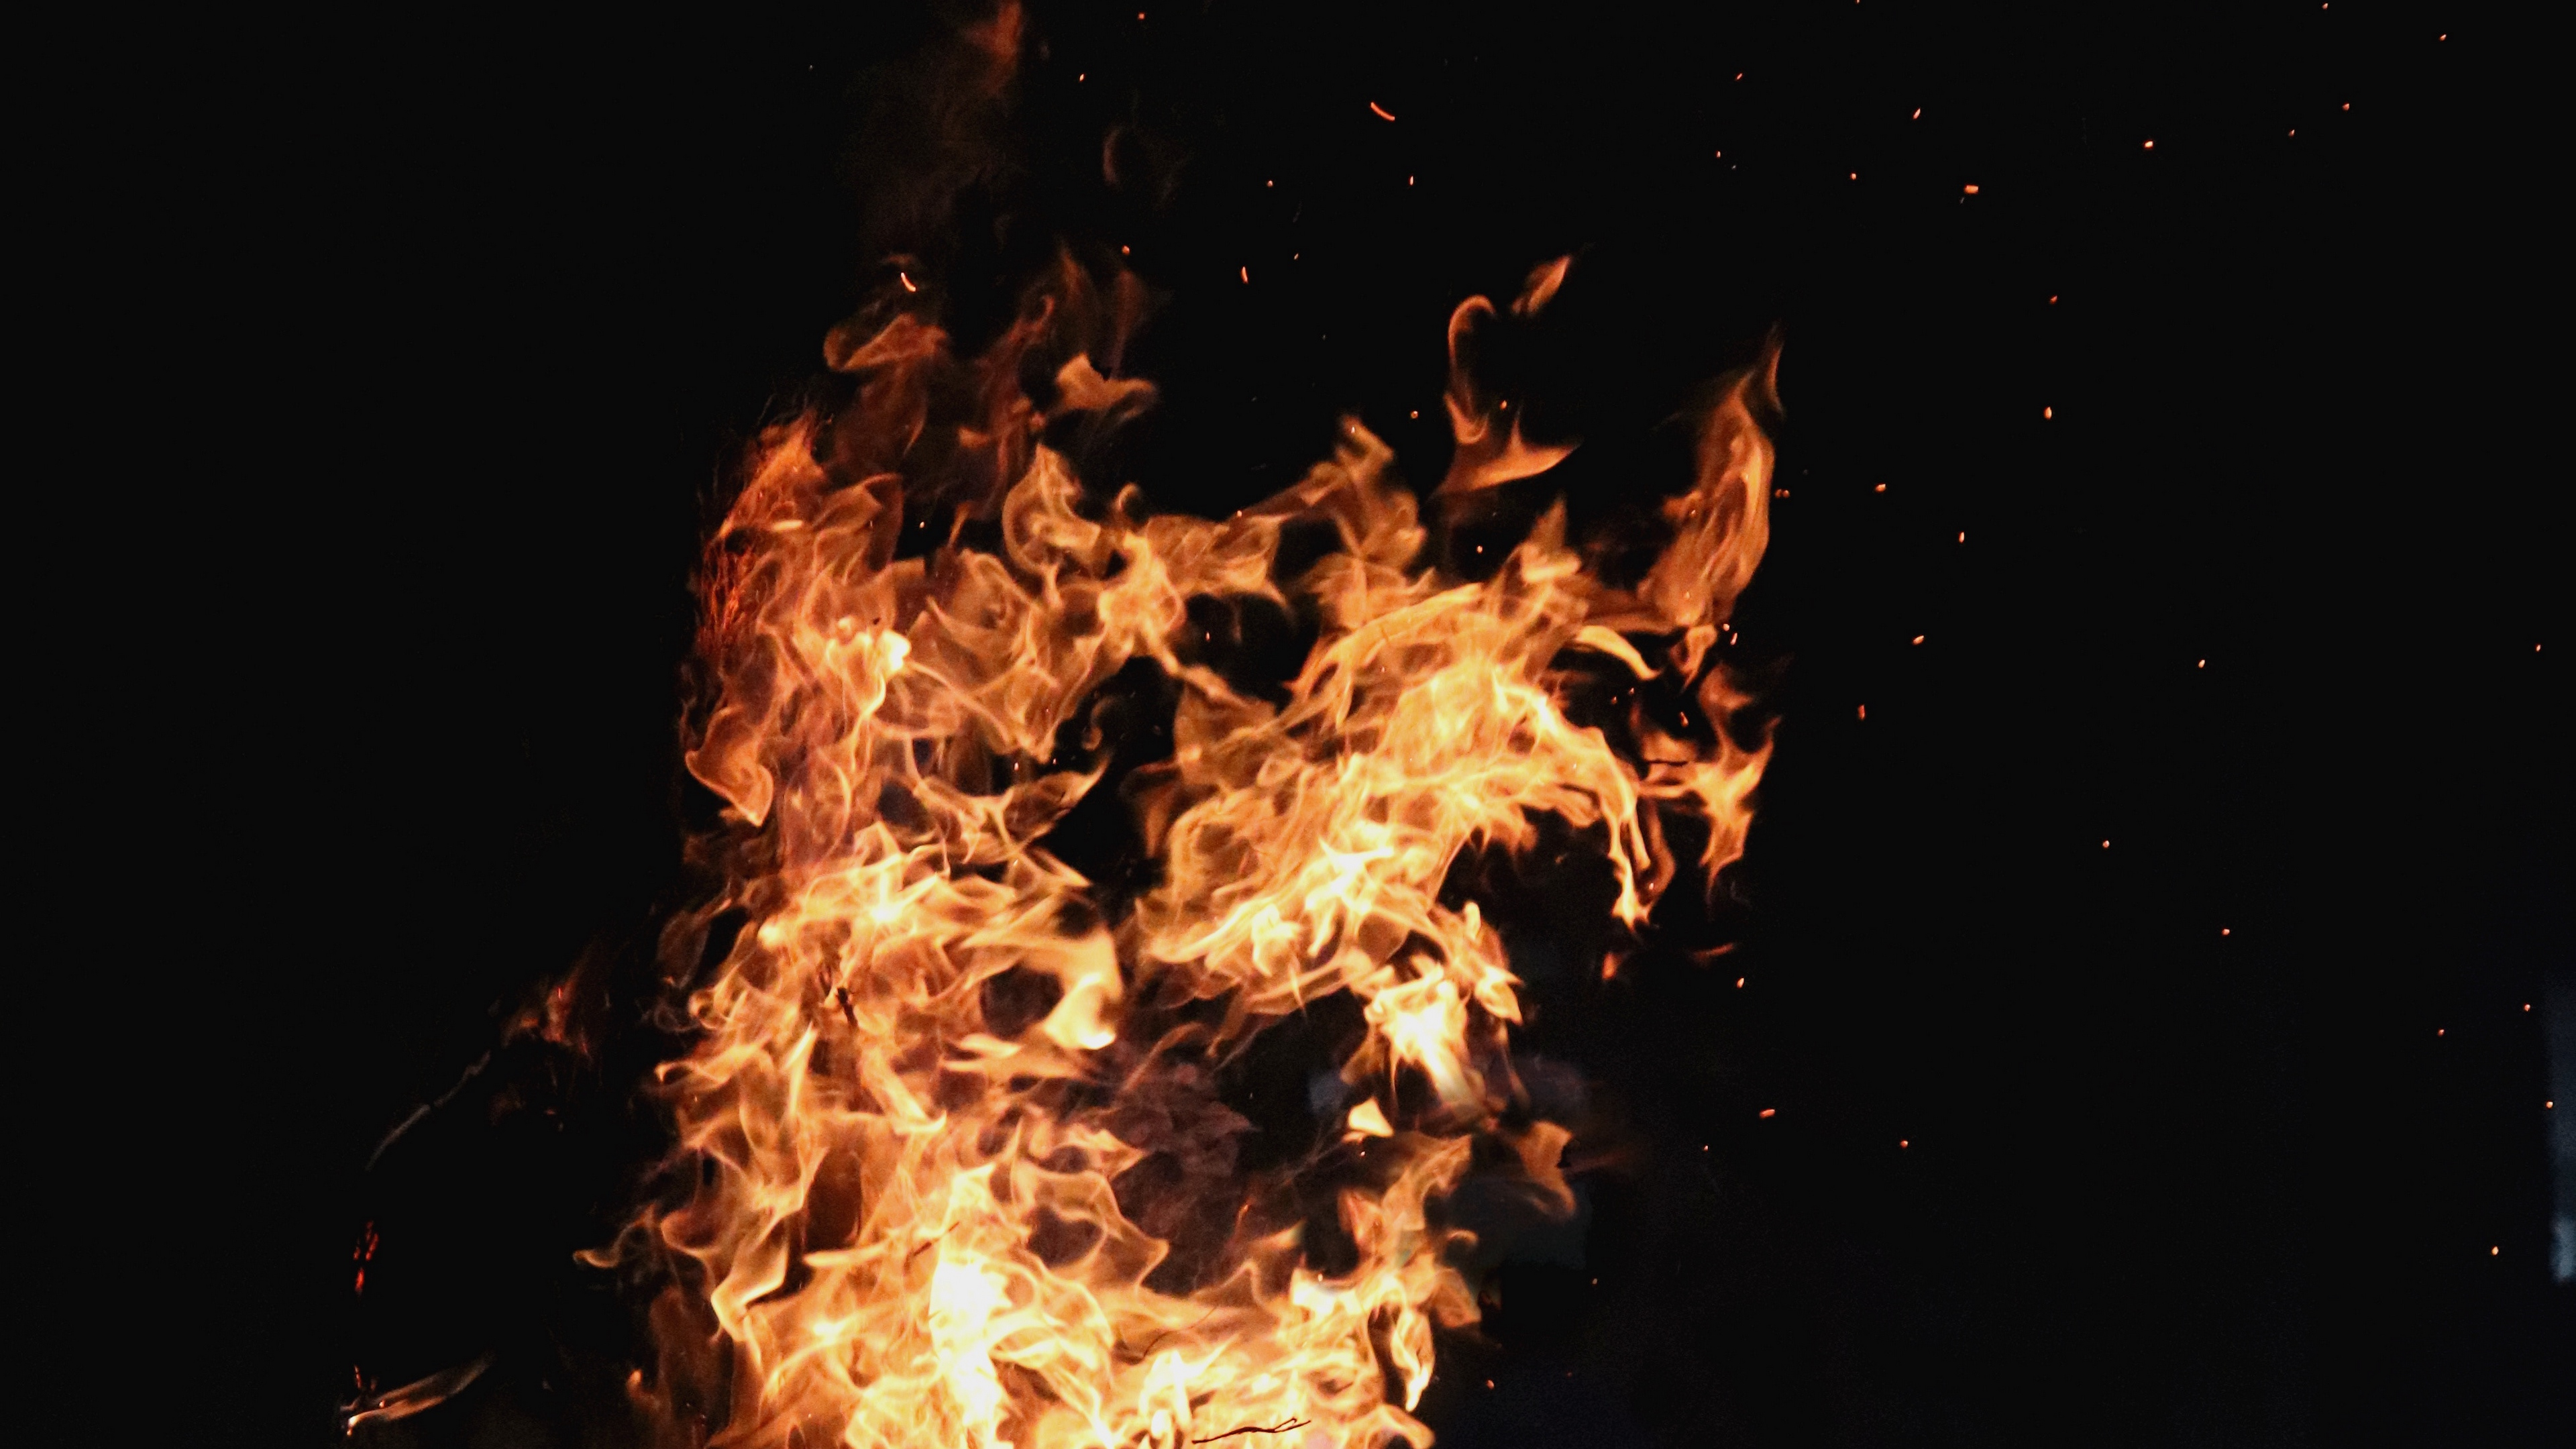 fire bonfire flame dark background 4k 1536017751 - fire, bonfire, flame, dark background 4k - flame, Fire, bonfire